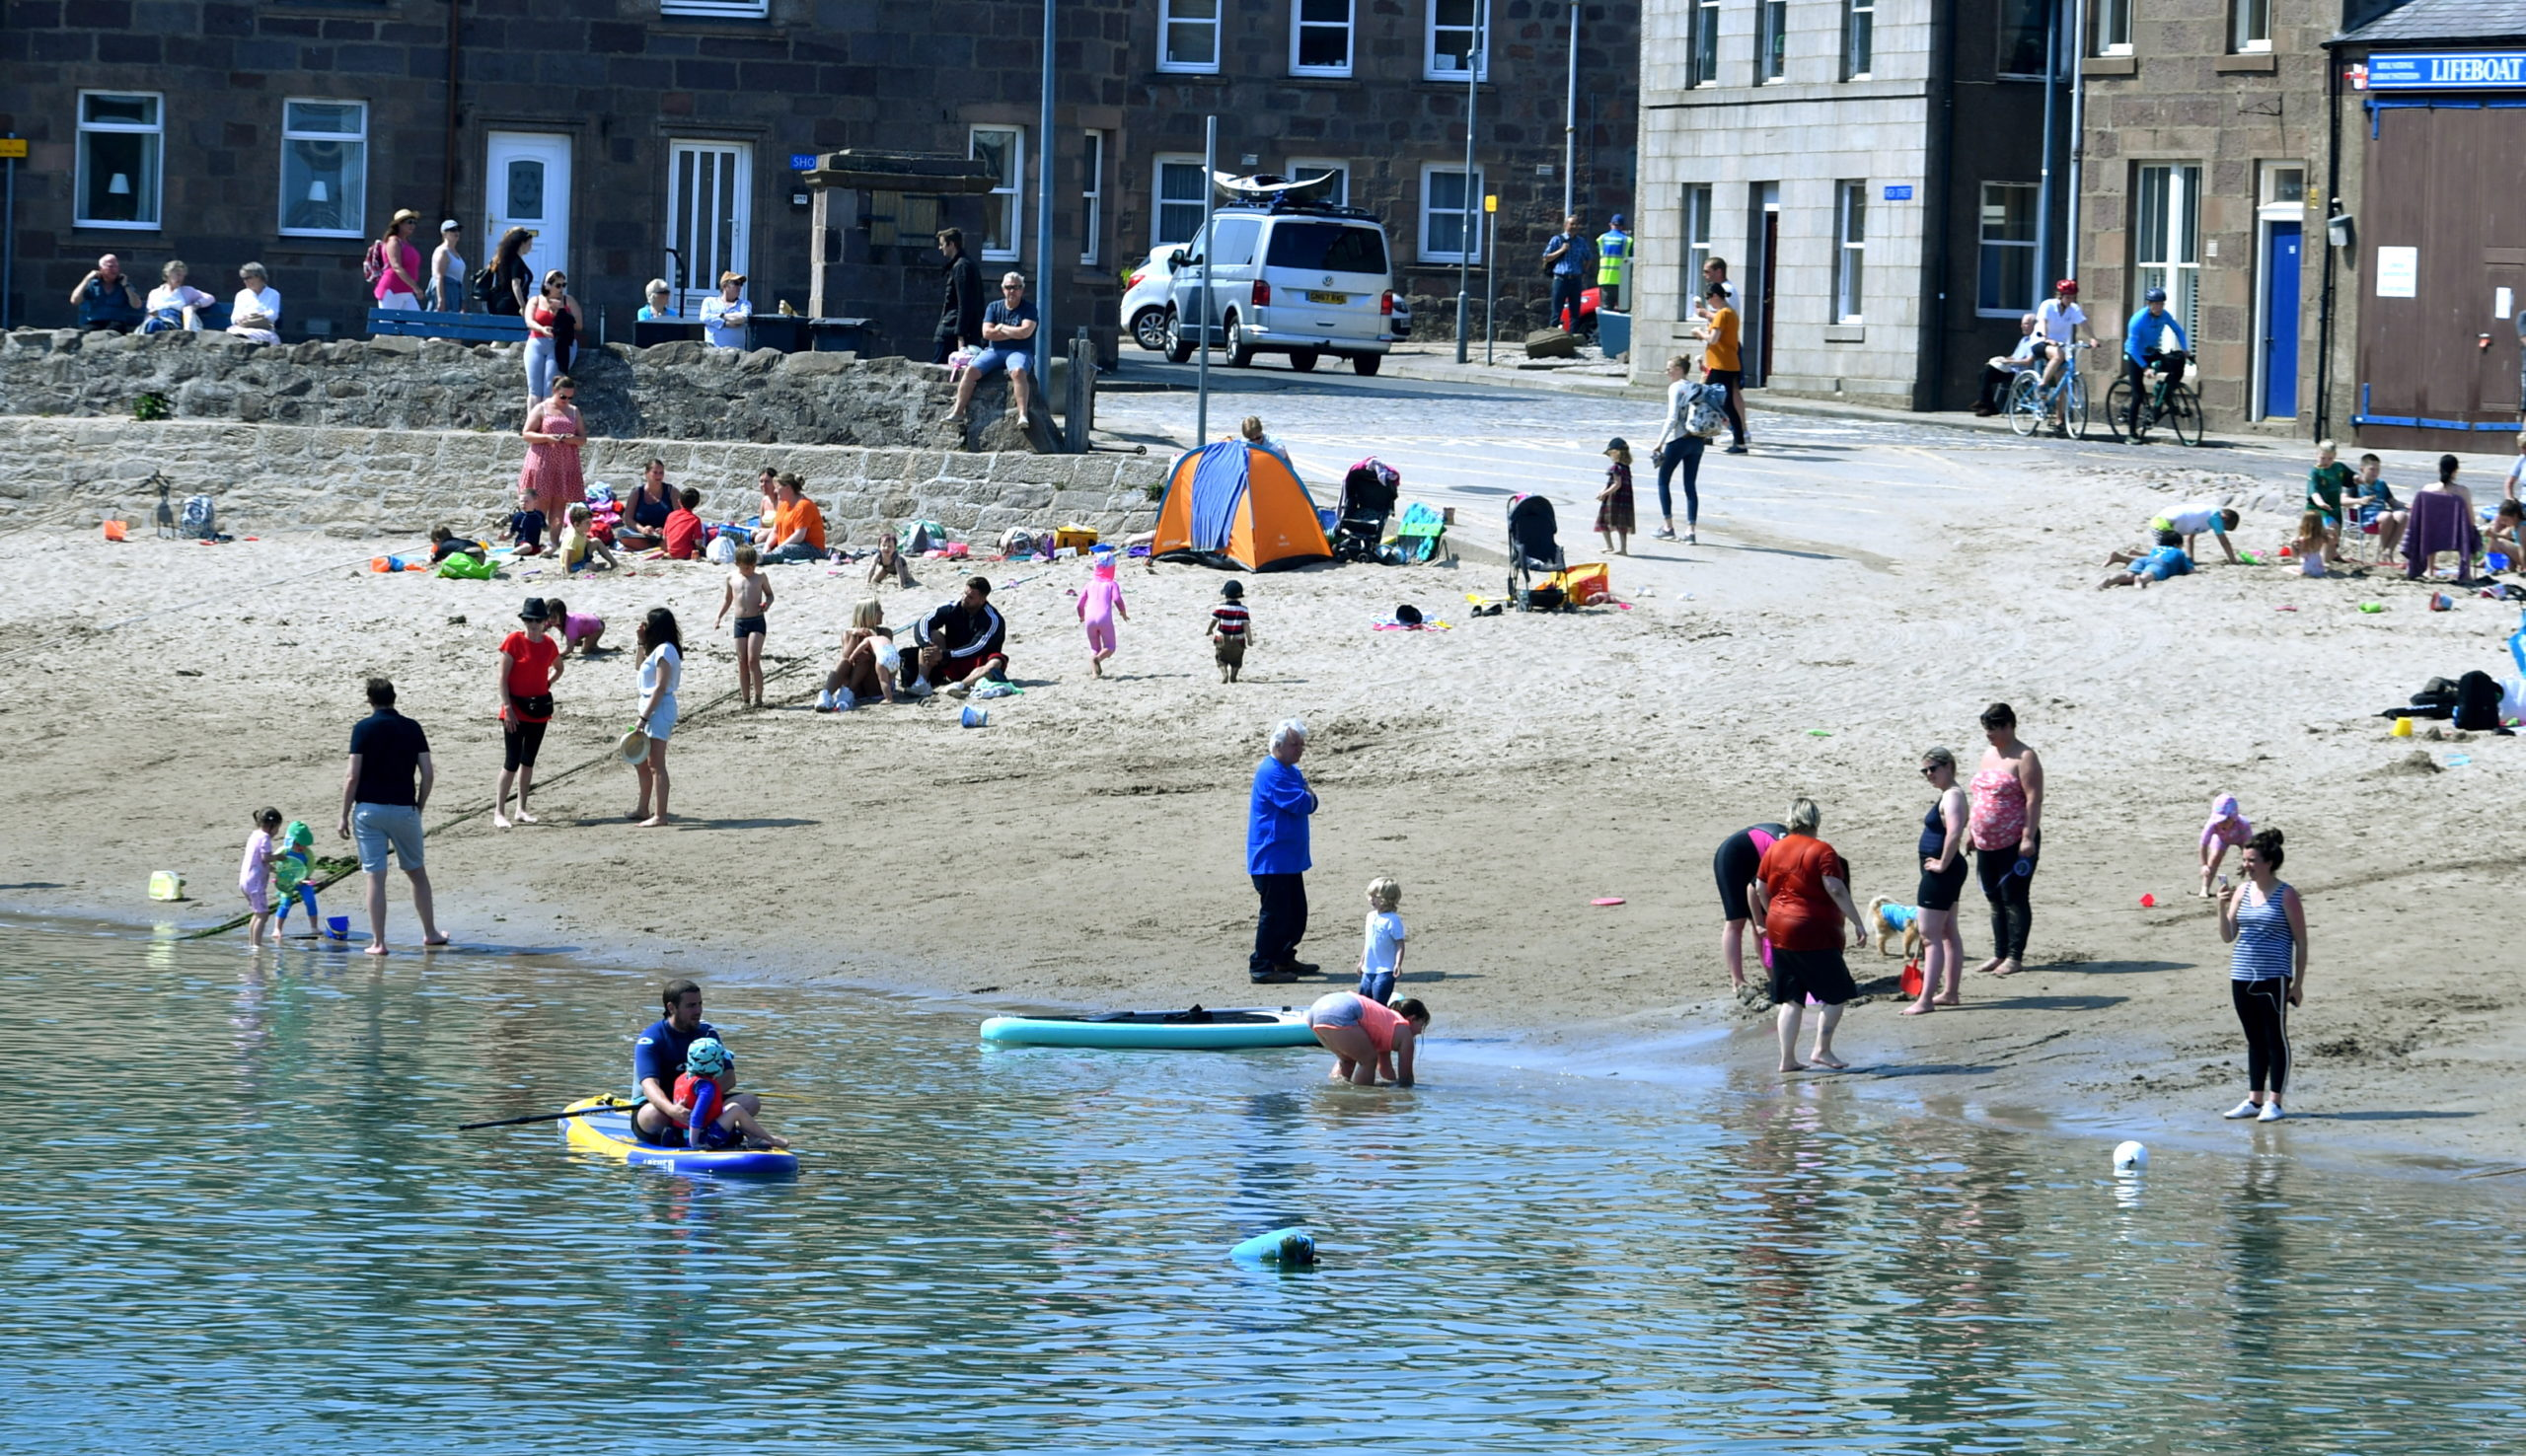 People flocked to Stonehaven beach today